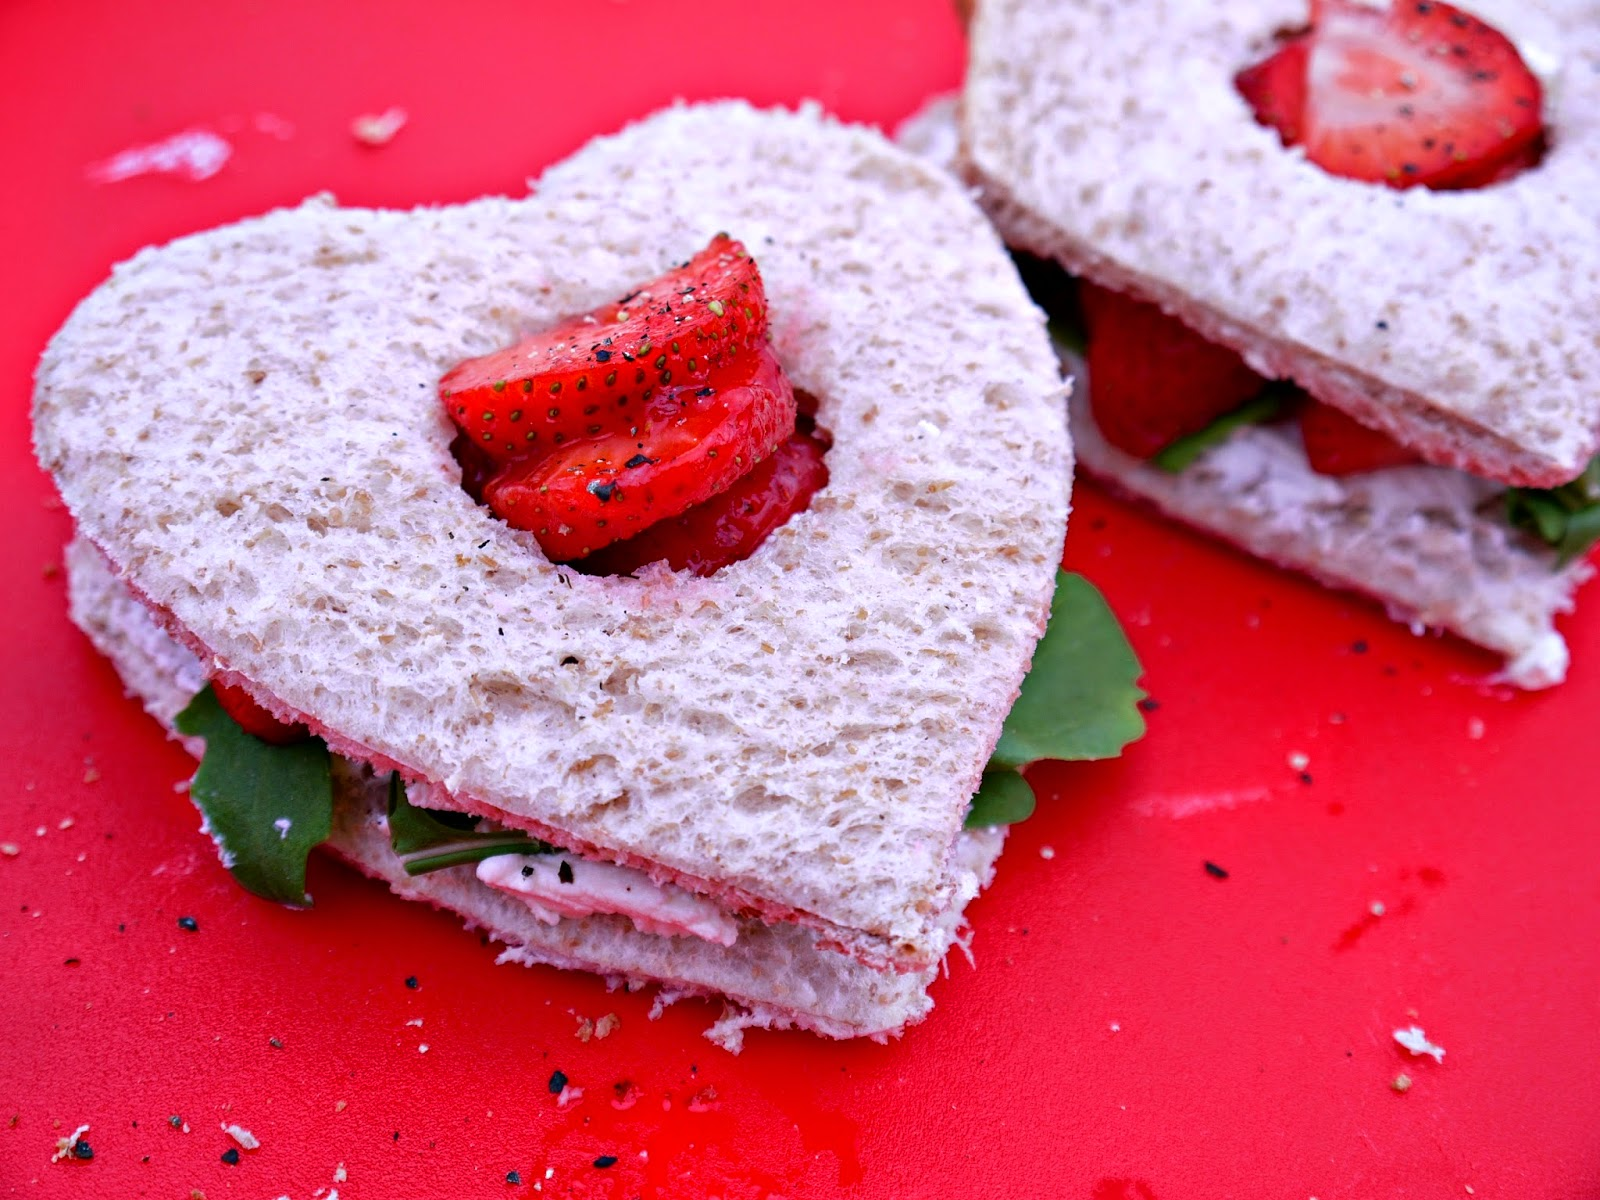 Valentines, Roberts bakery, sandwich fillings